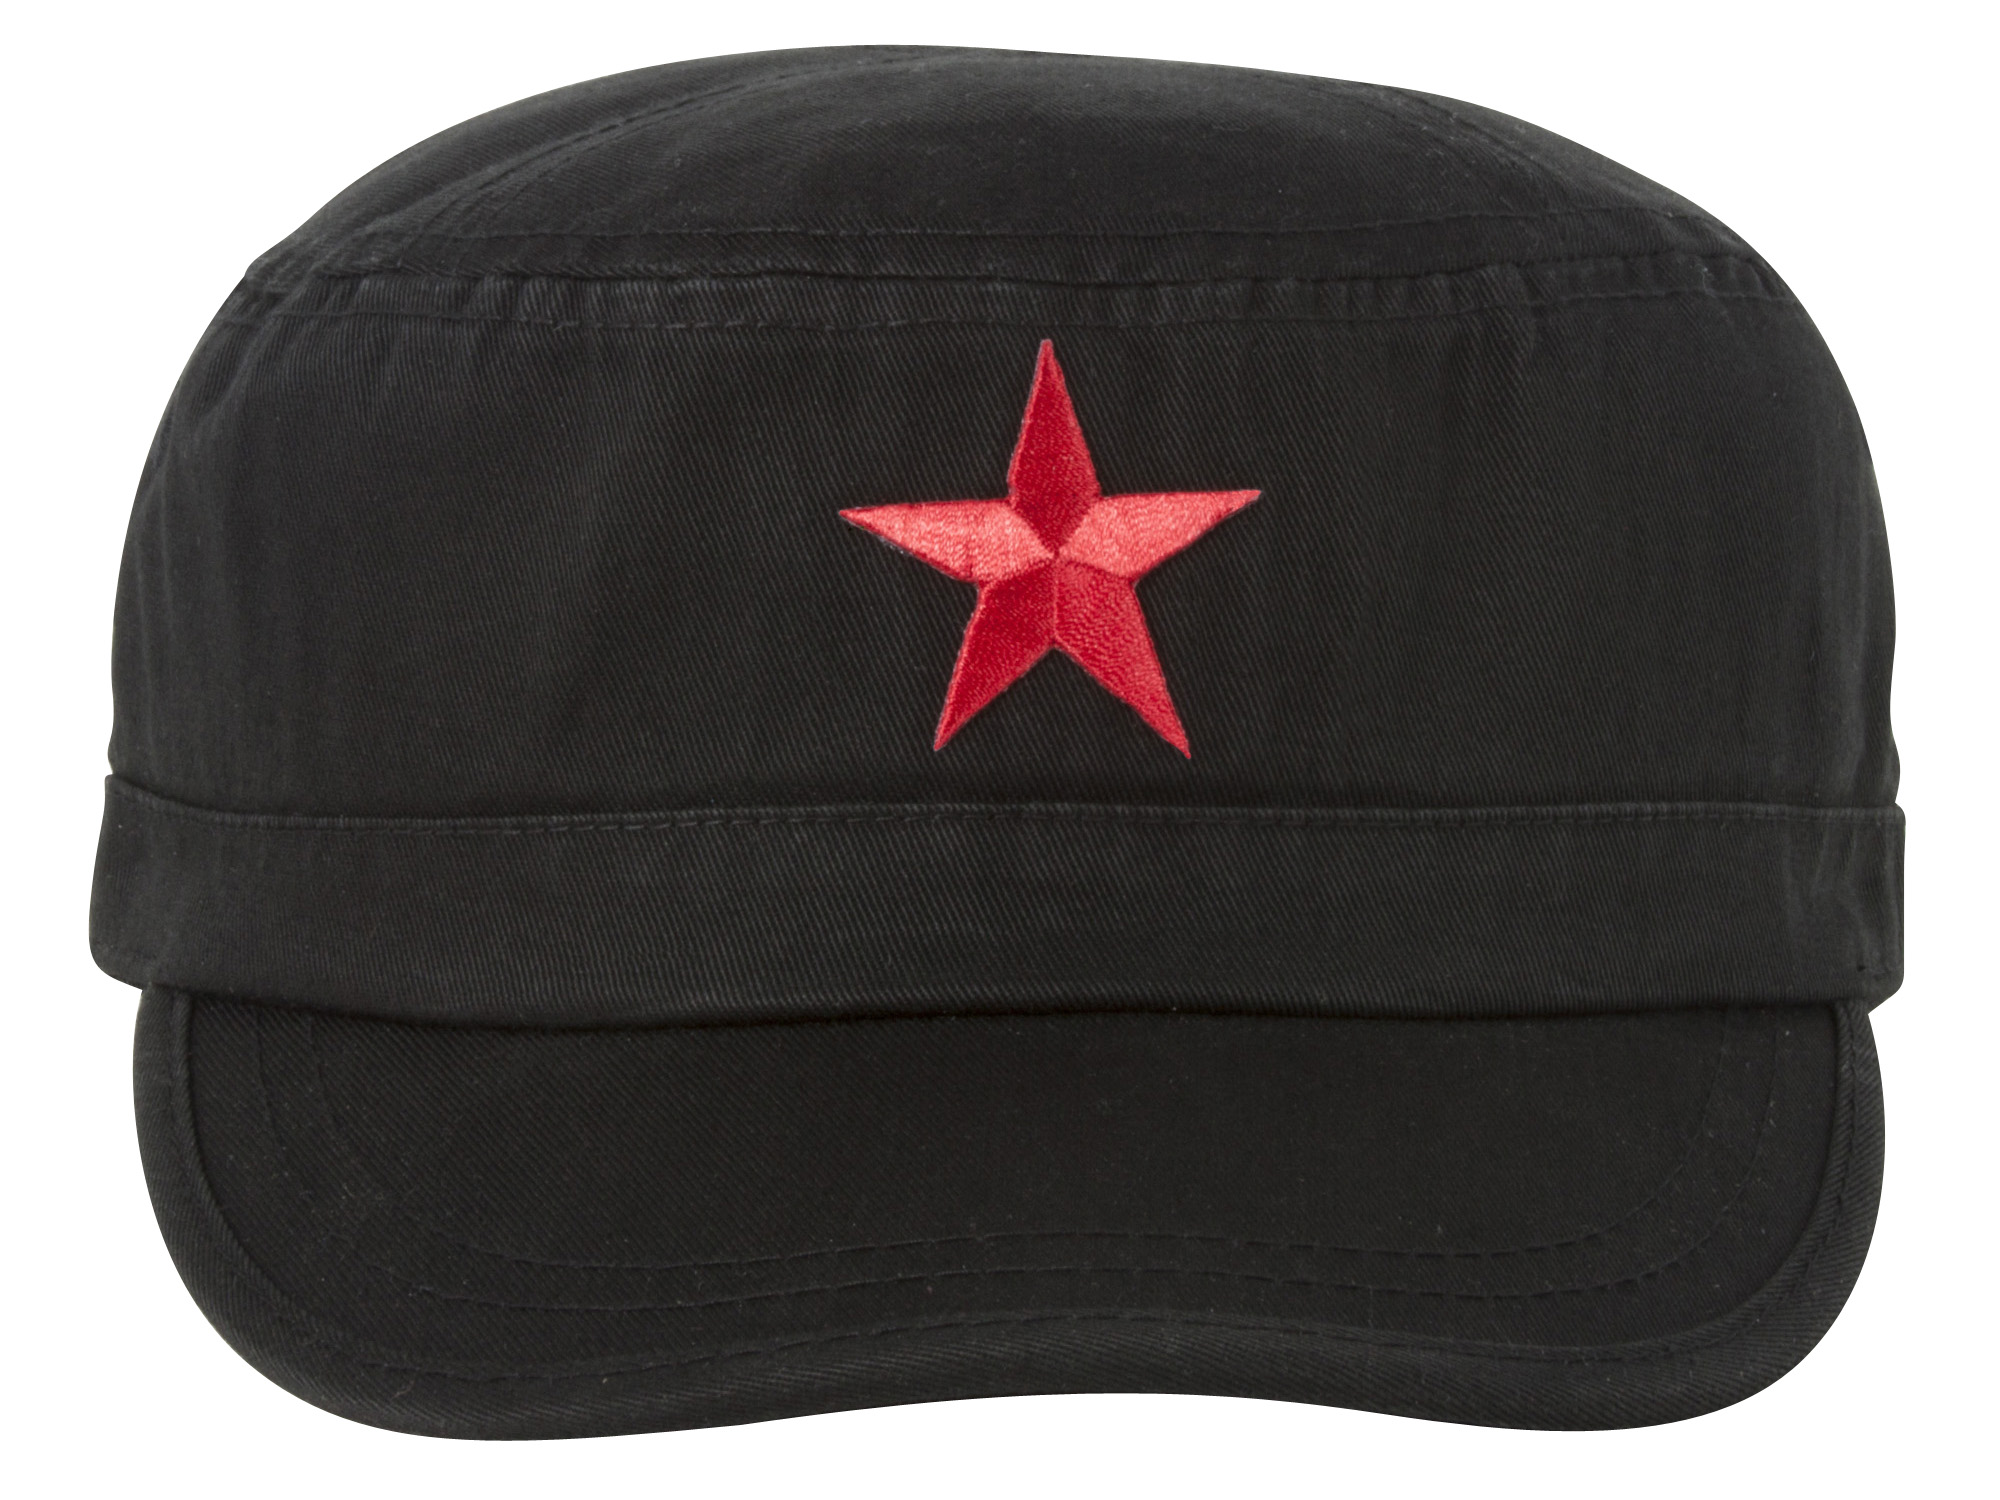 New-Army-Cadet-Adjustable-Hat-w-Red-Star thumbnail 3